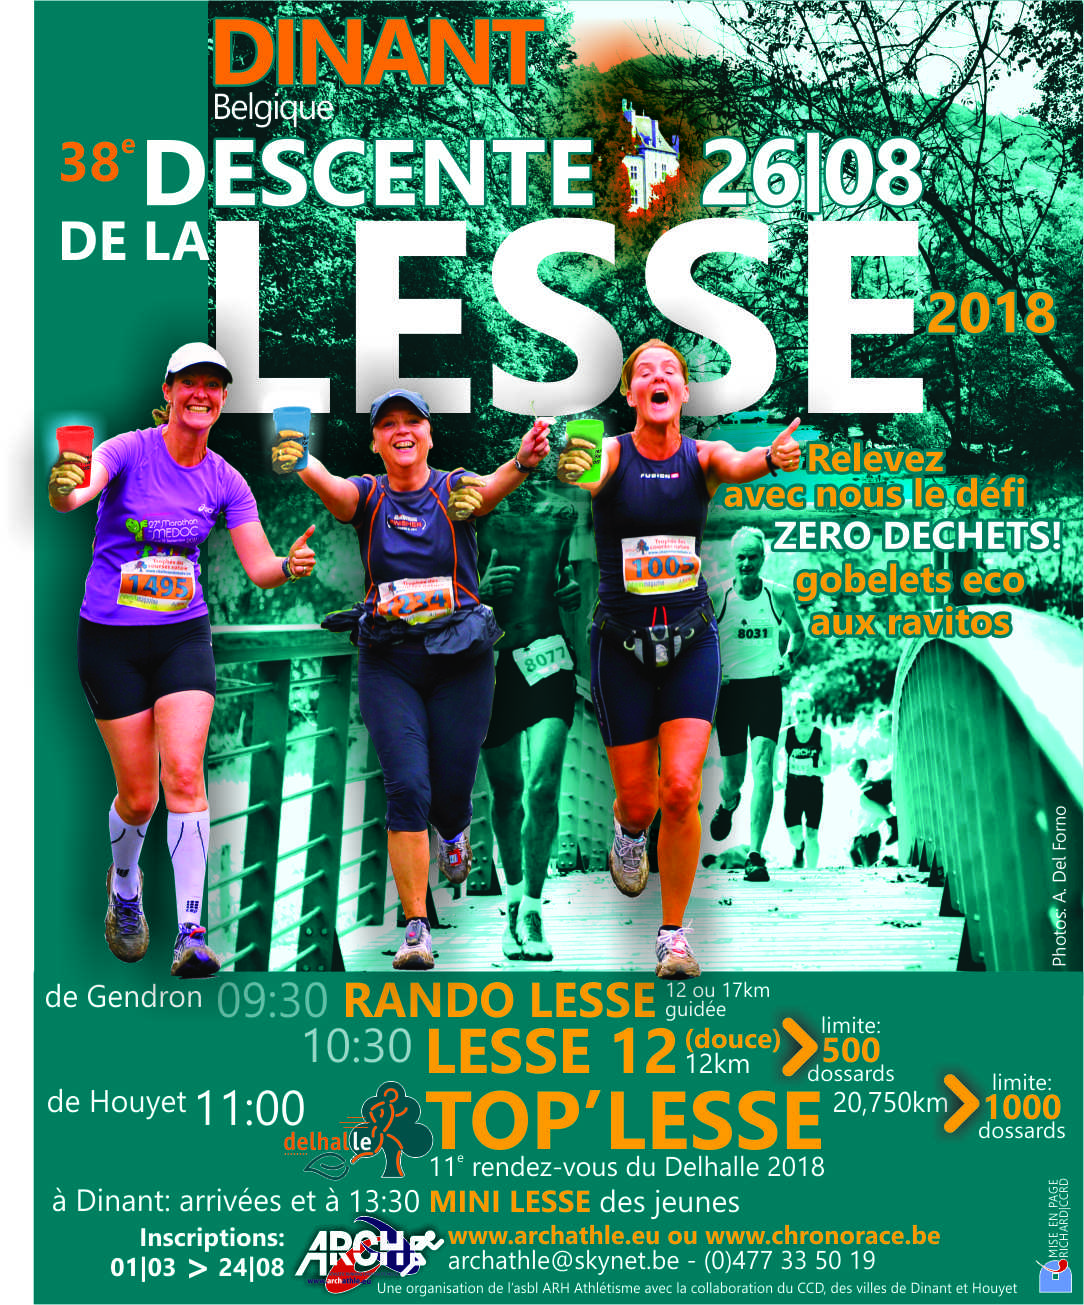 La Lesse ... La plus belle des Descentes (Jogging International)